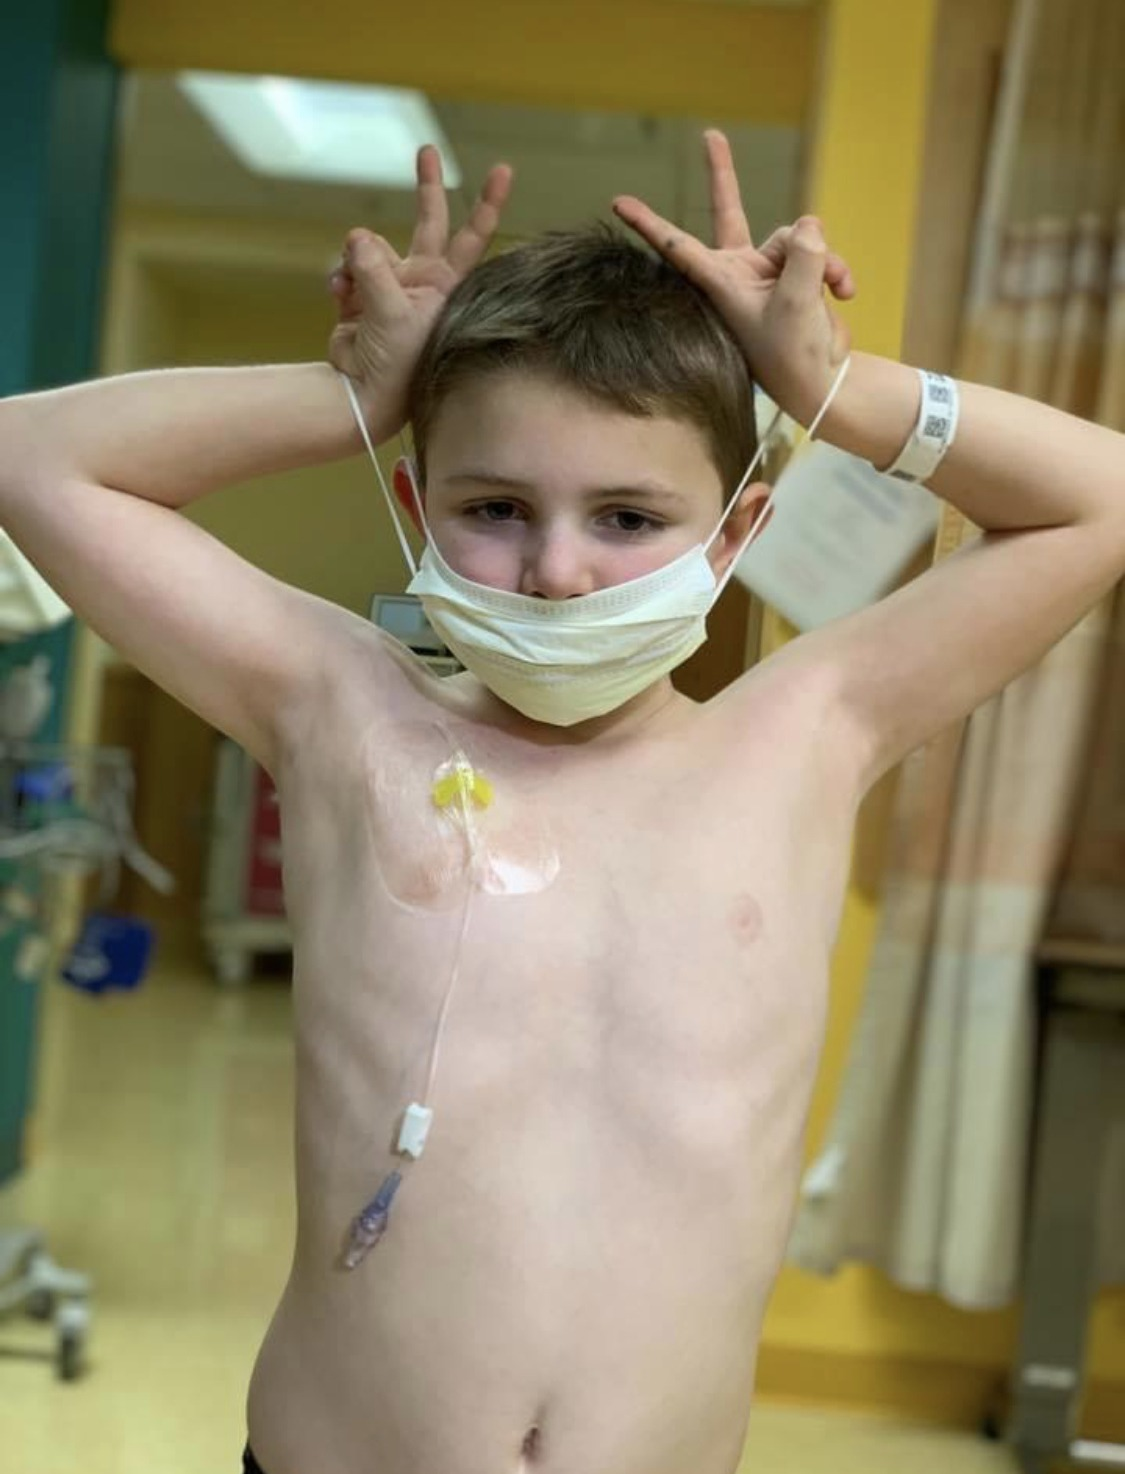 Sam wearing mask at hospital during cancer treatment doing peace signs with his hands